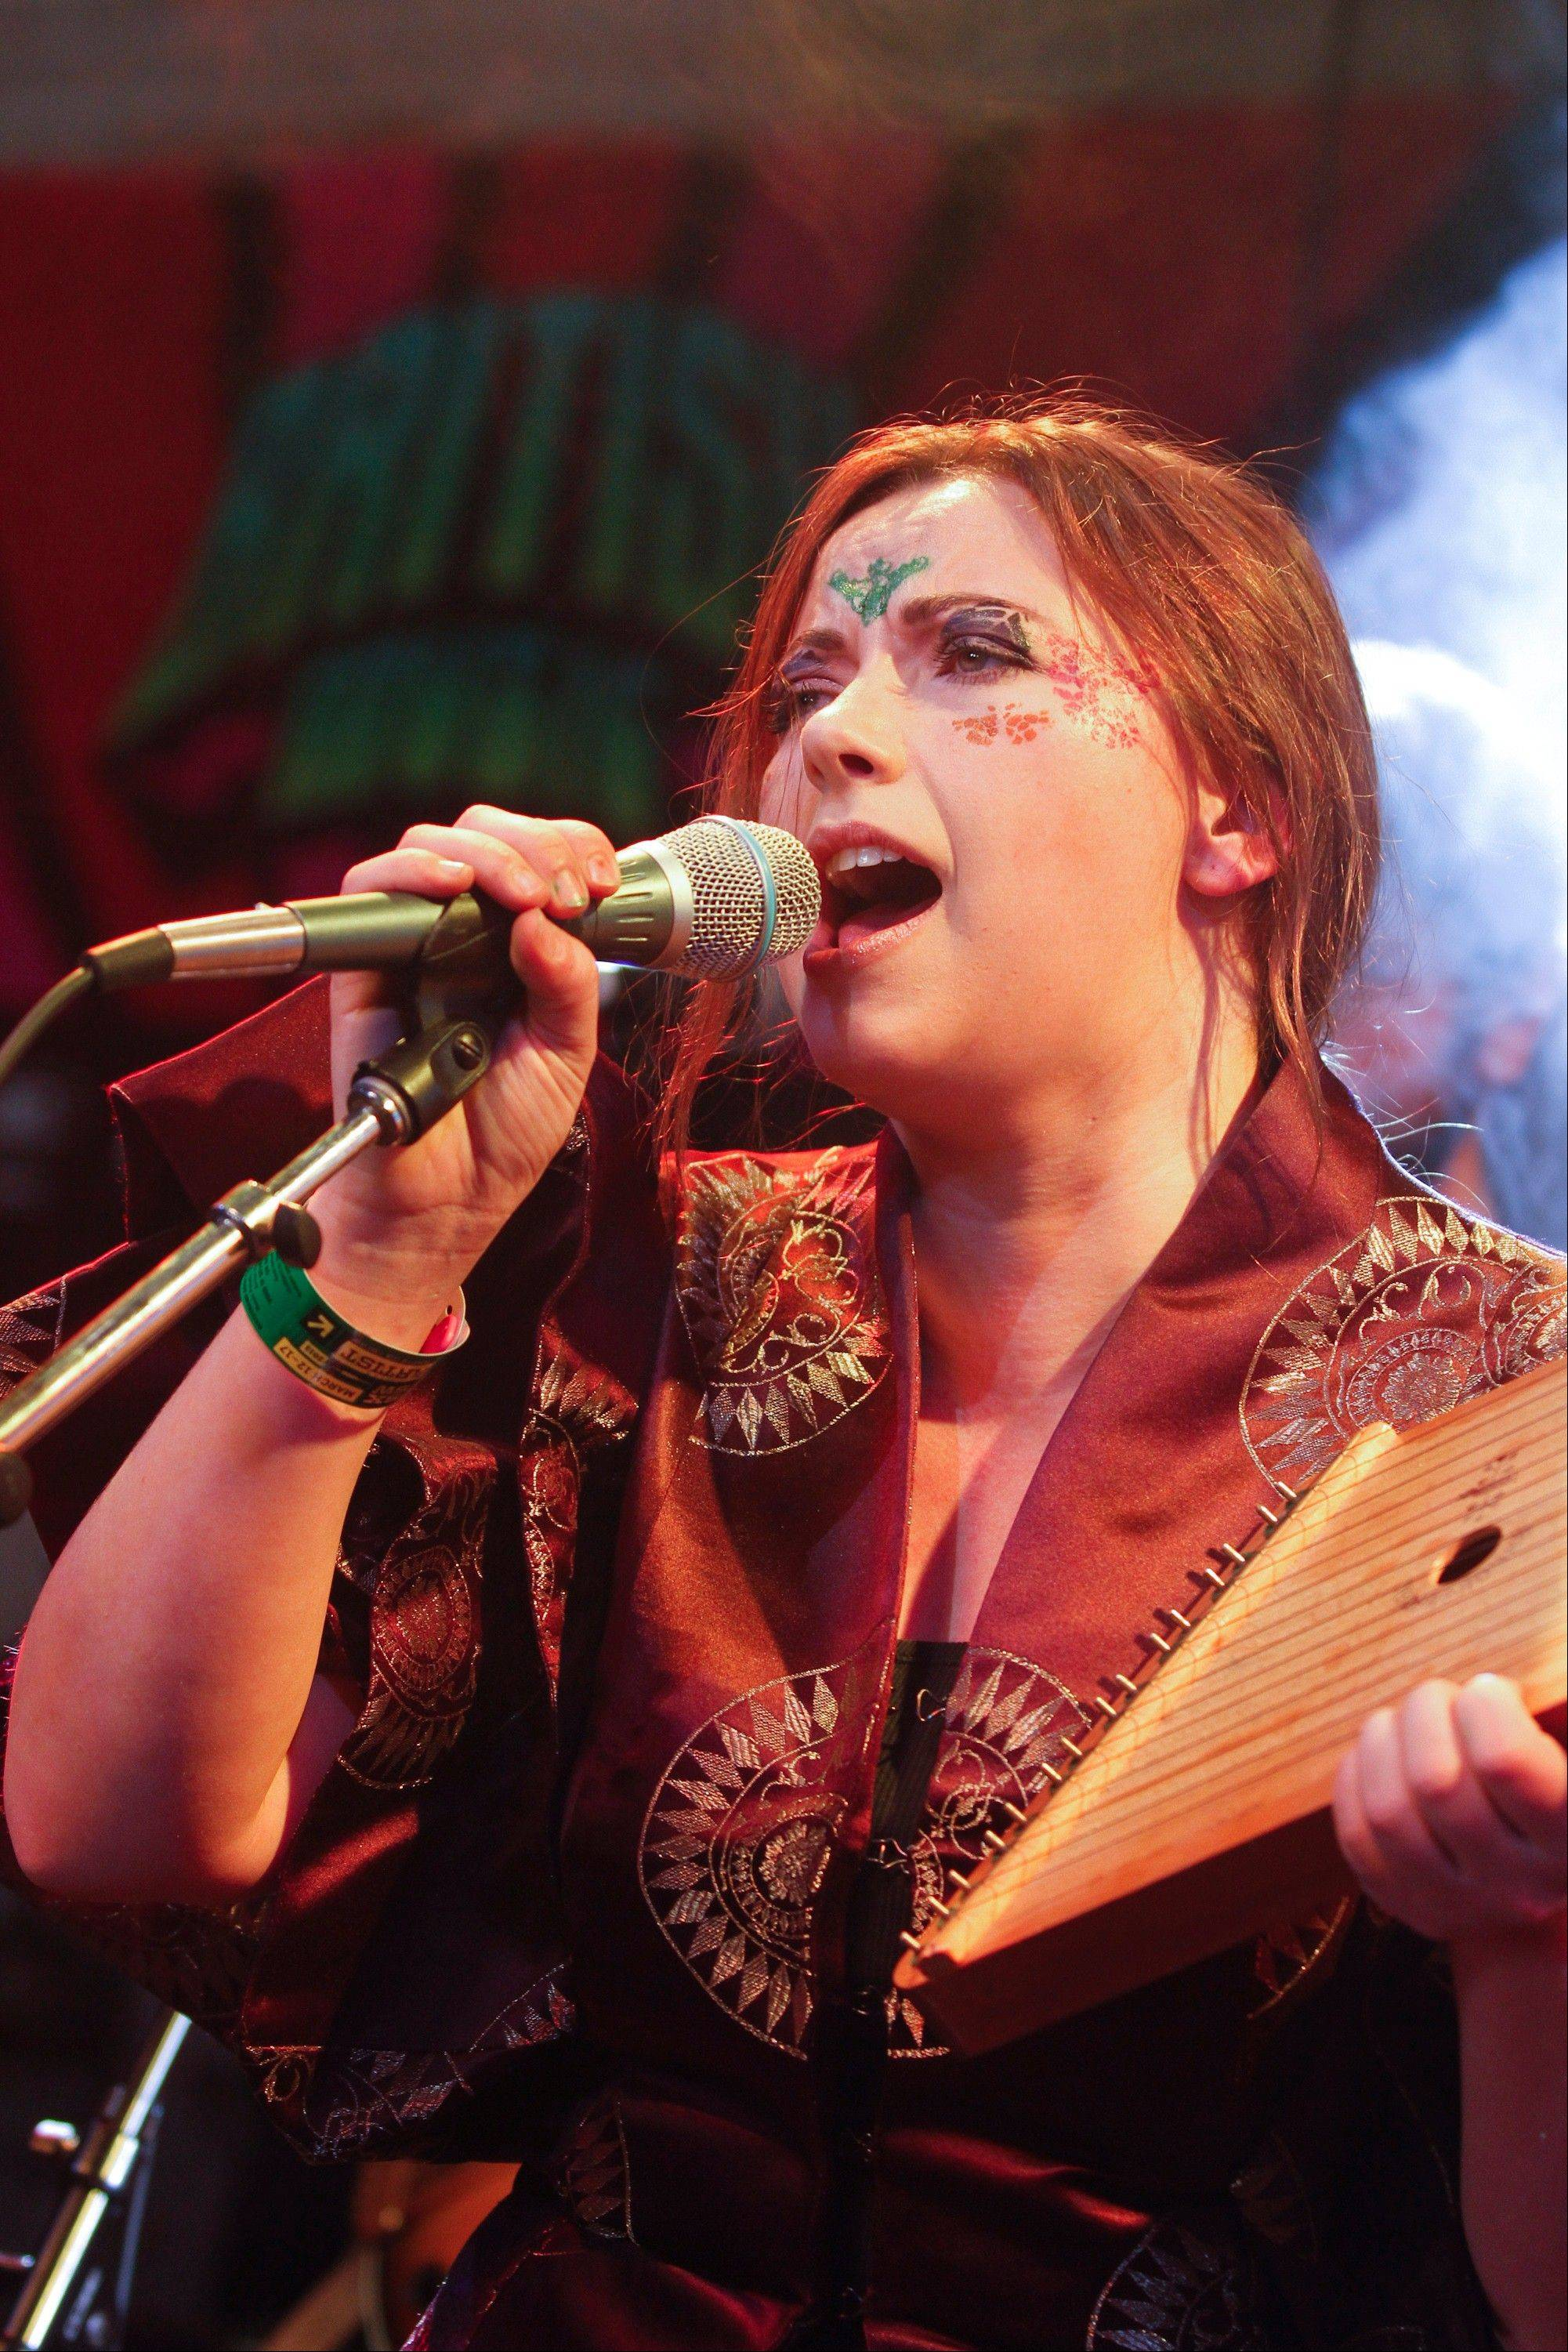 Singer Charlotte Church performs during the recent SXSW Music Festival, in Austin, Texas.